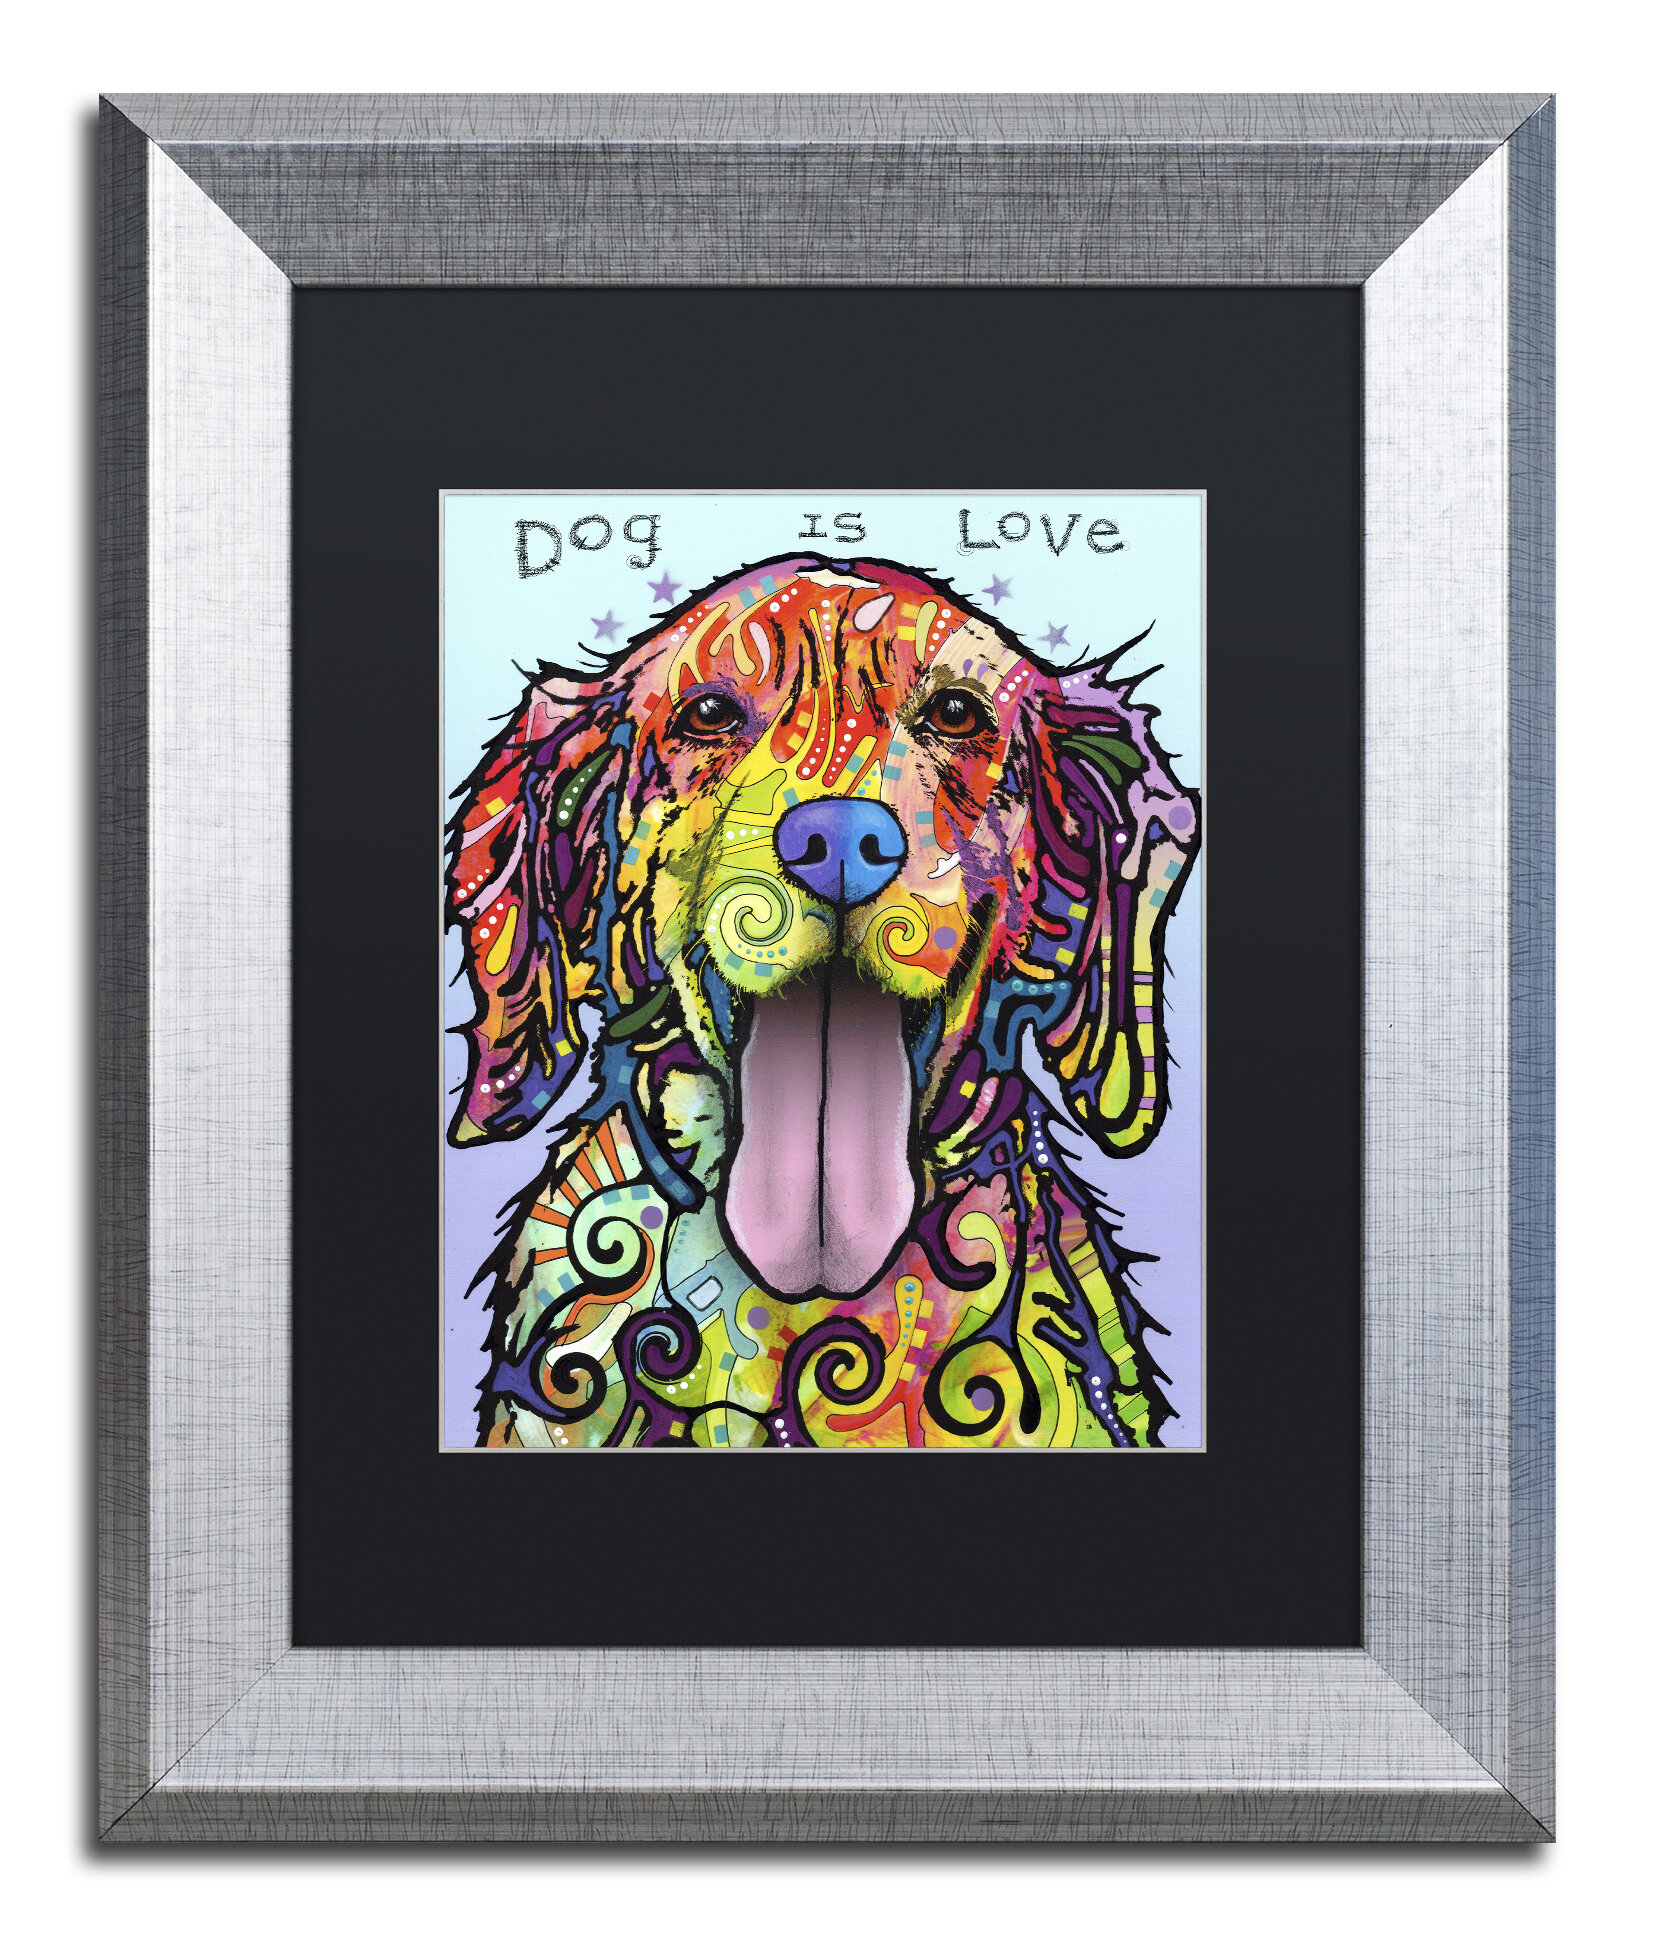 Trademark art 39dog is love39 by dean russo framed painting for Best brand of paint for kitchen cabinets with iron man wall art